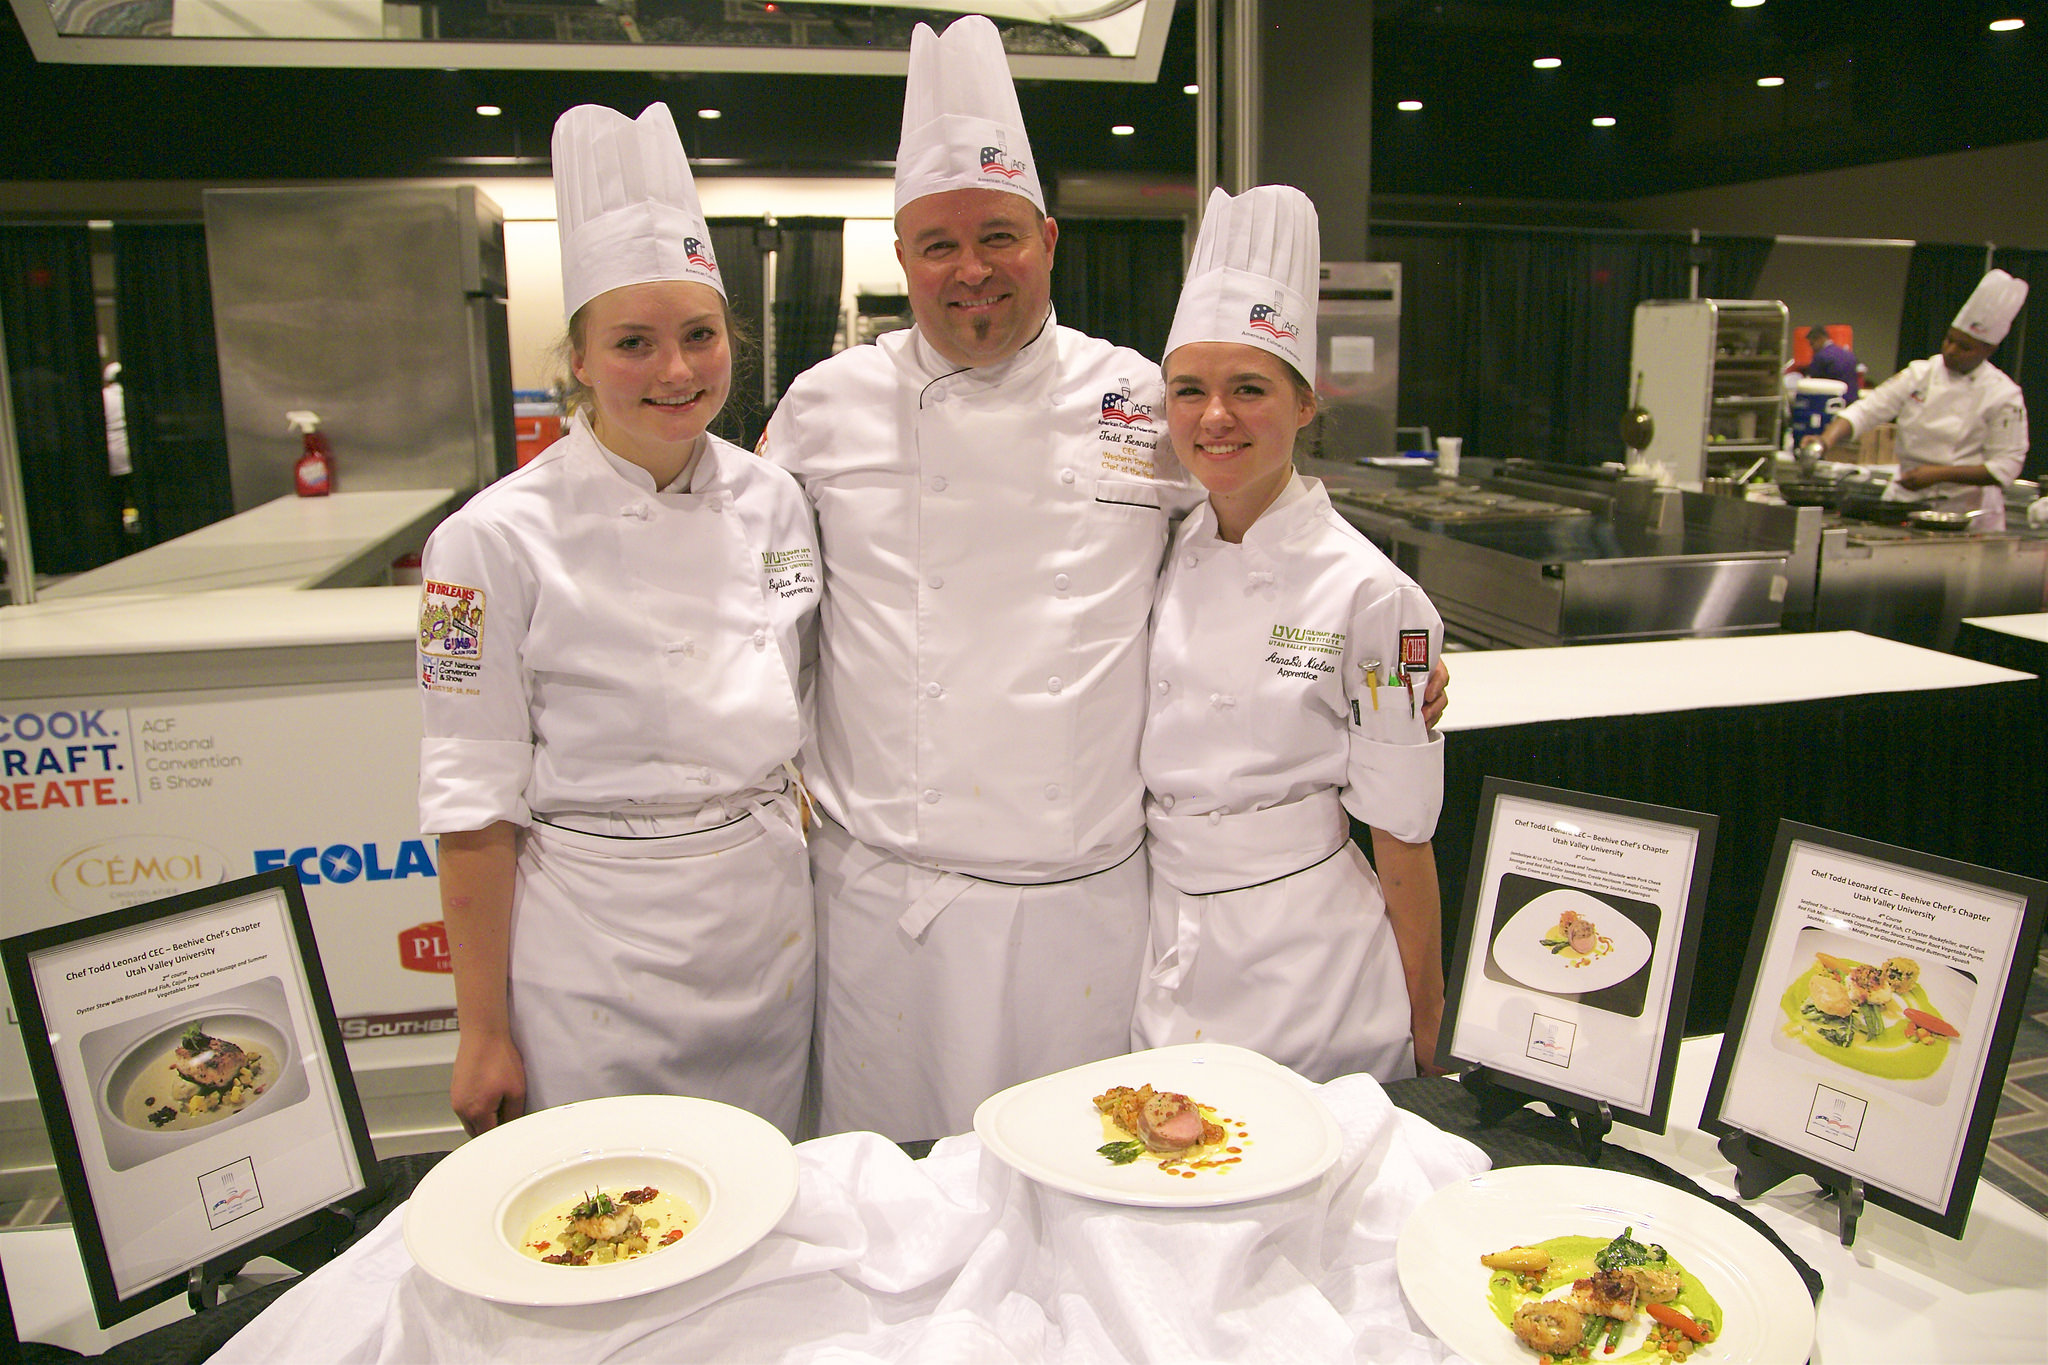 Latter-day Saint chef Todd Leonard, center, was assisted in the 2018 National Chef of the Year competition by a pair of student apprentices — Lydia Harris, left, and AnnaLis Nielsen.